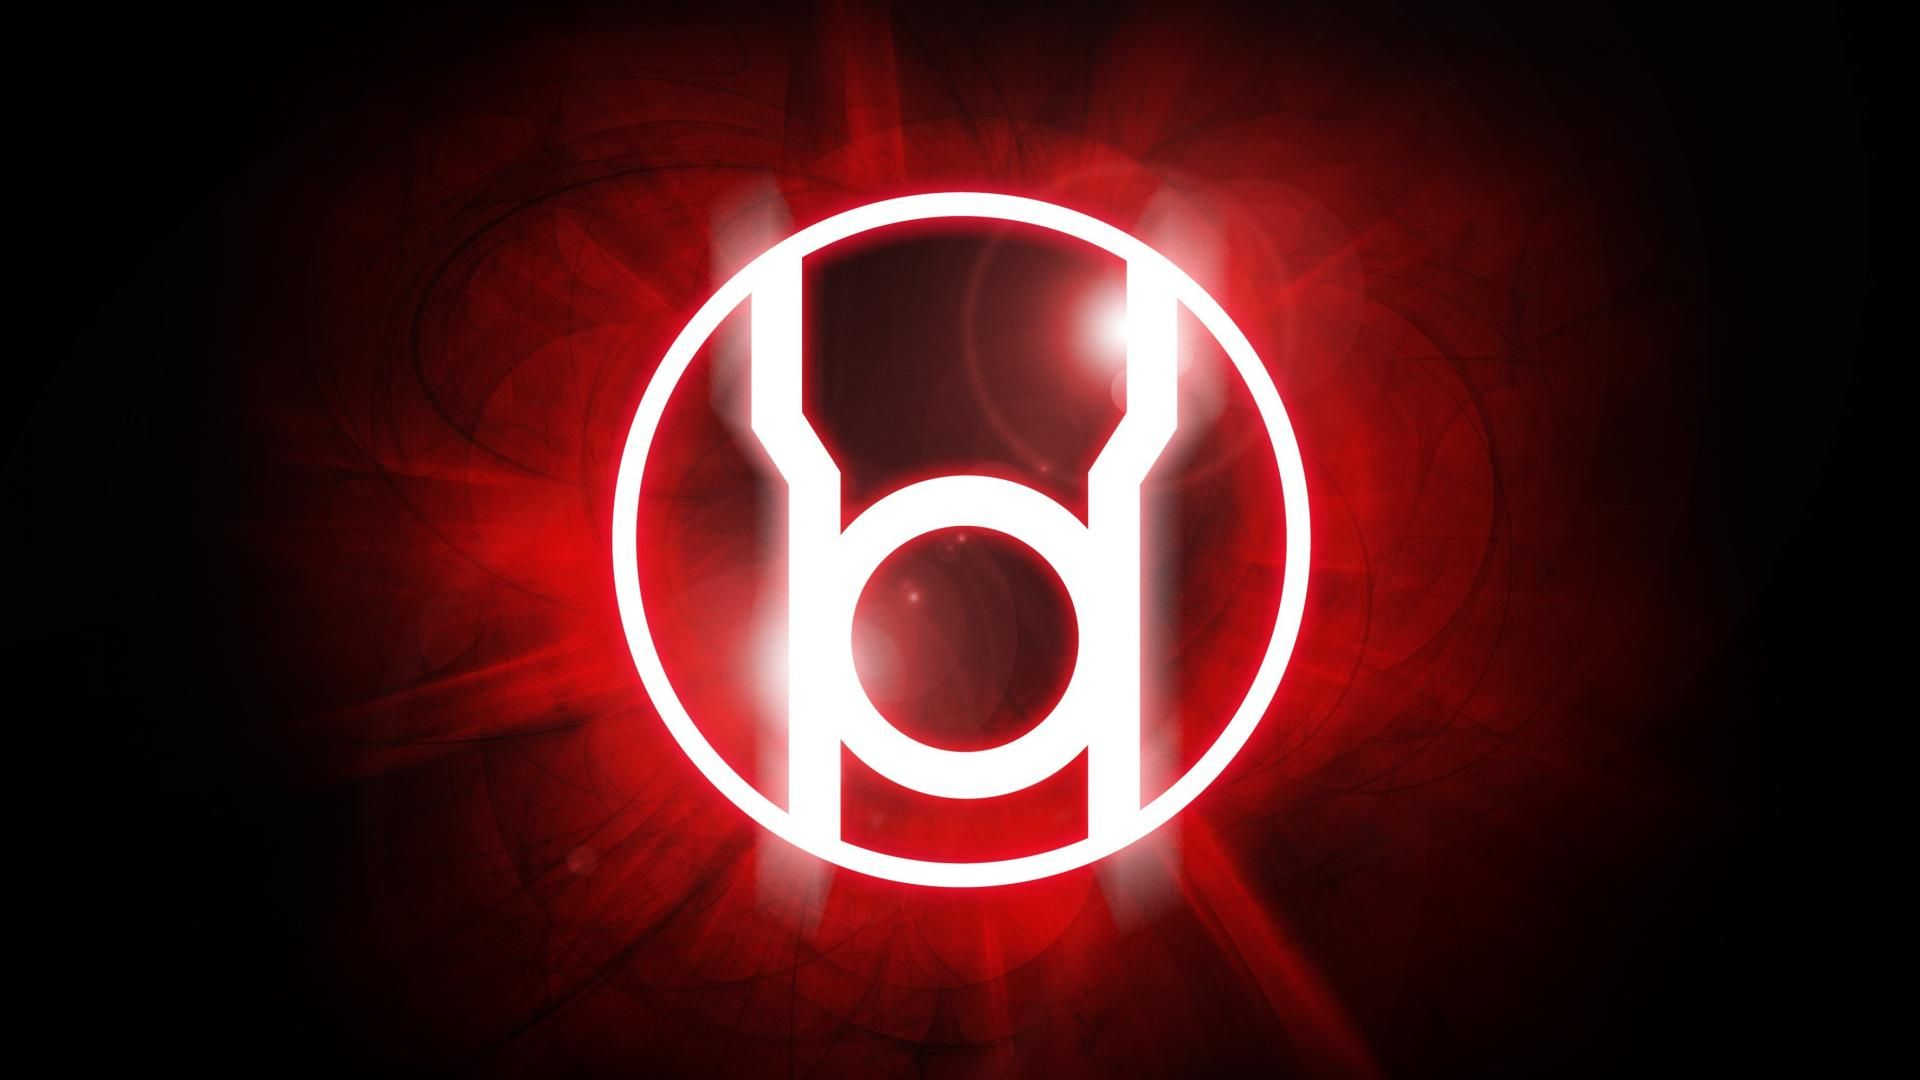 red lantern corps symbol wallpaper - drive.cheapusedmotorhome